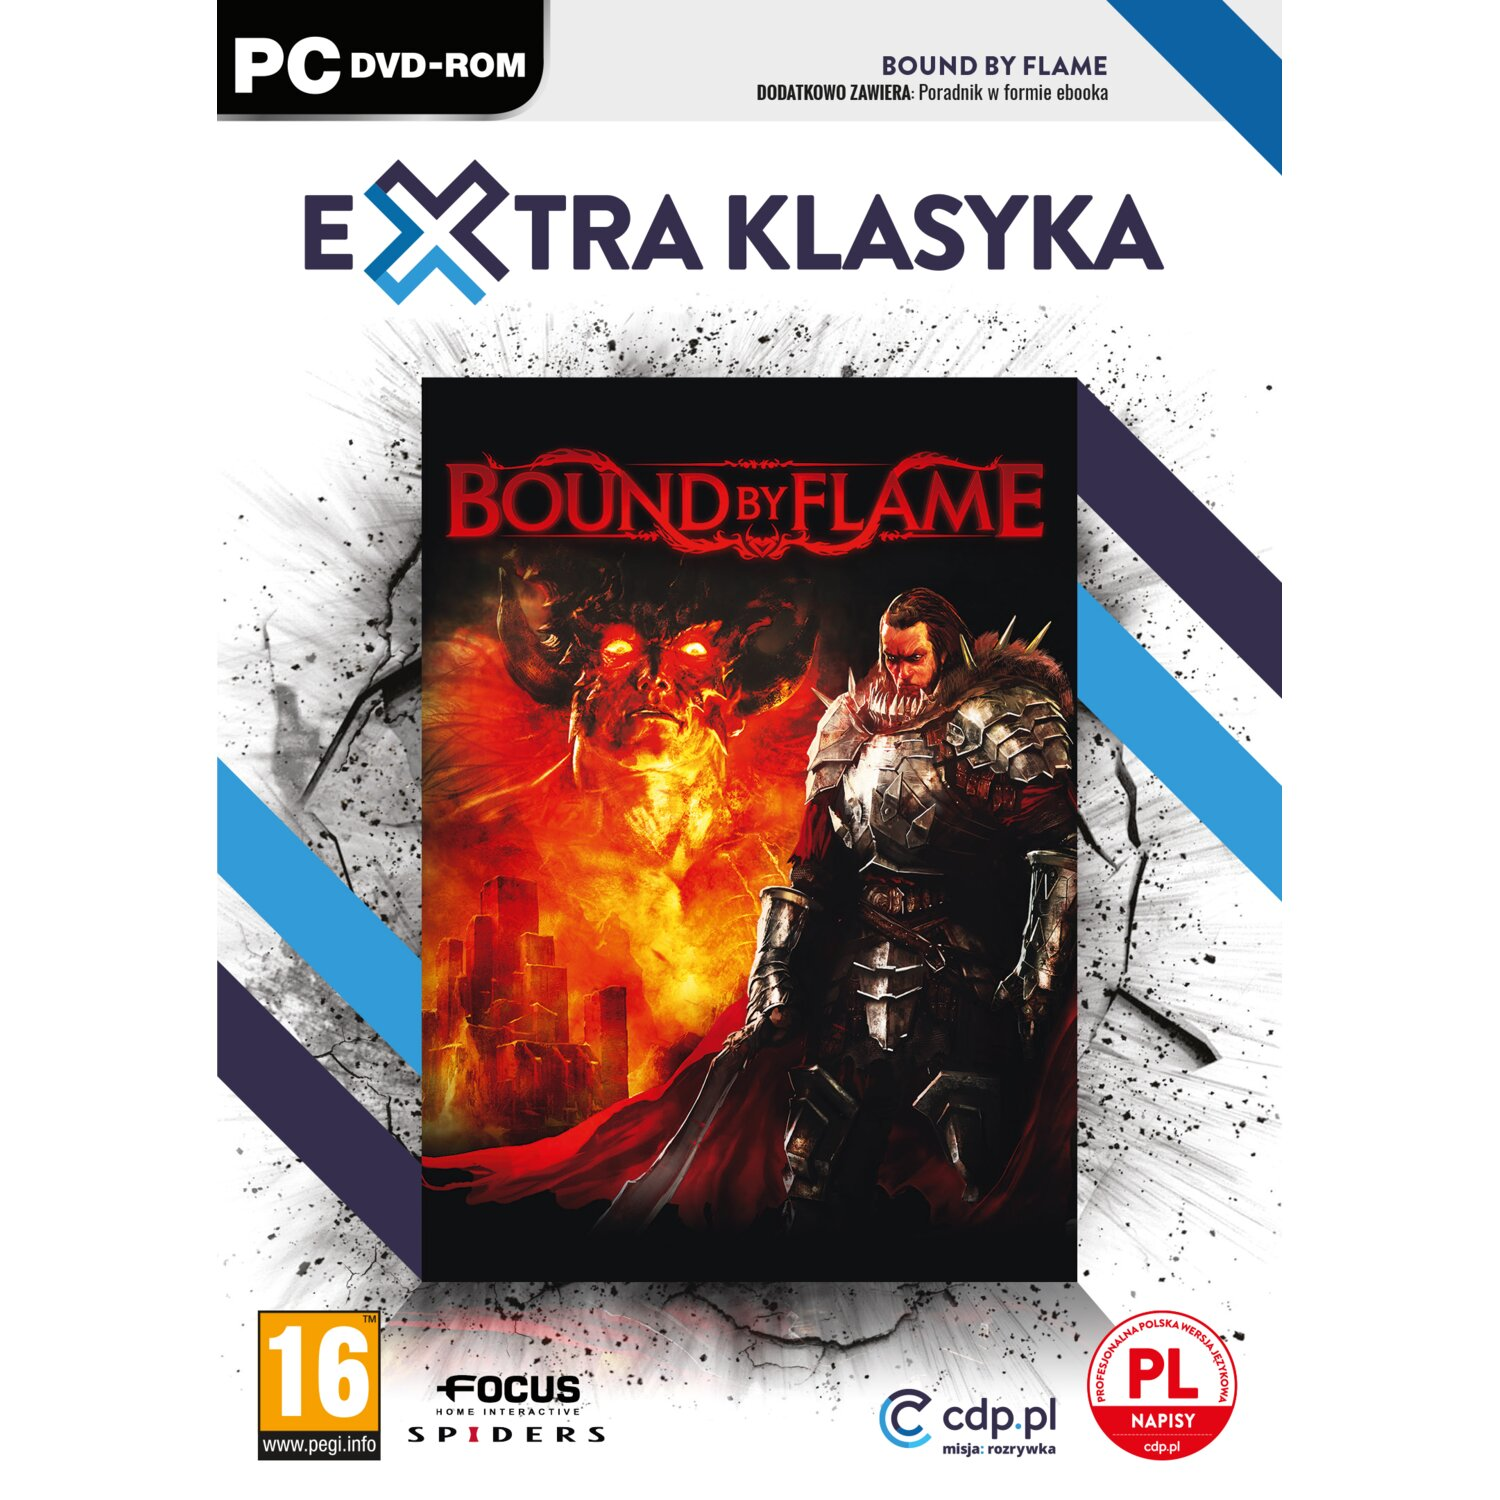 Gra PC XK Bound by Flame